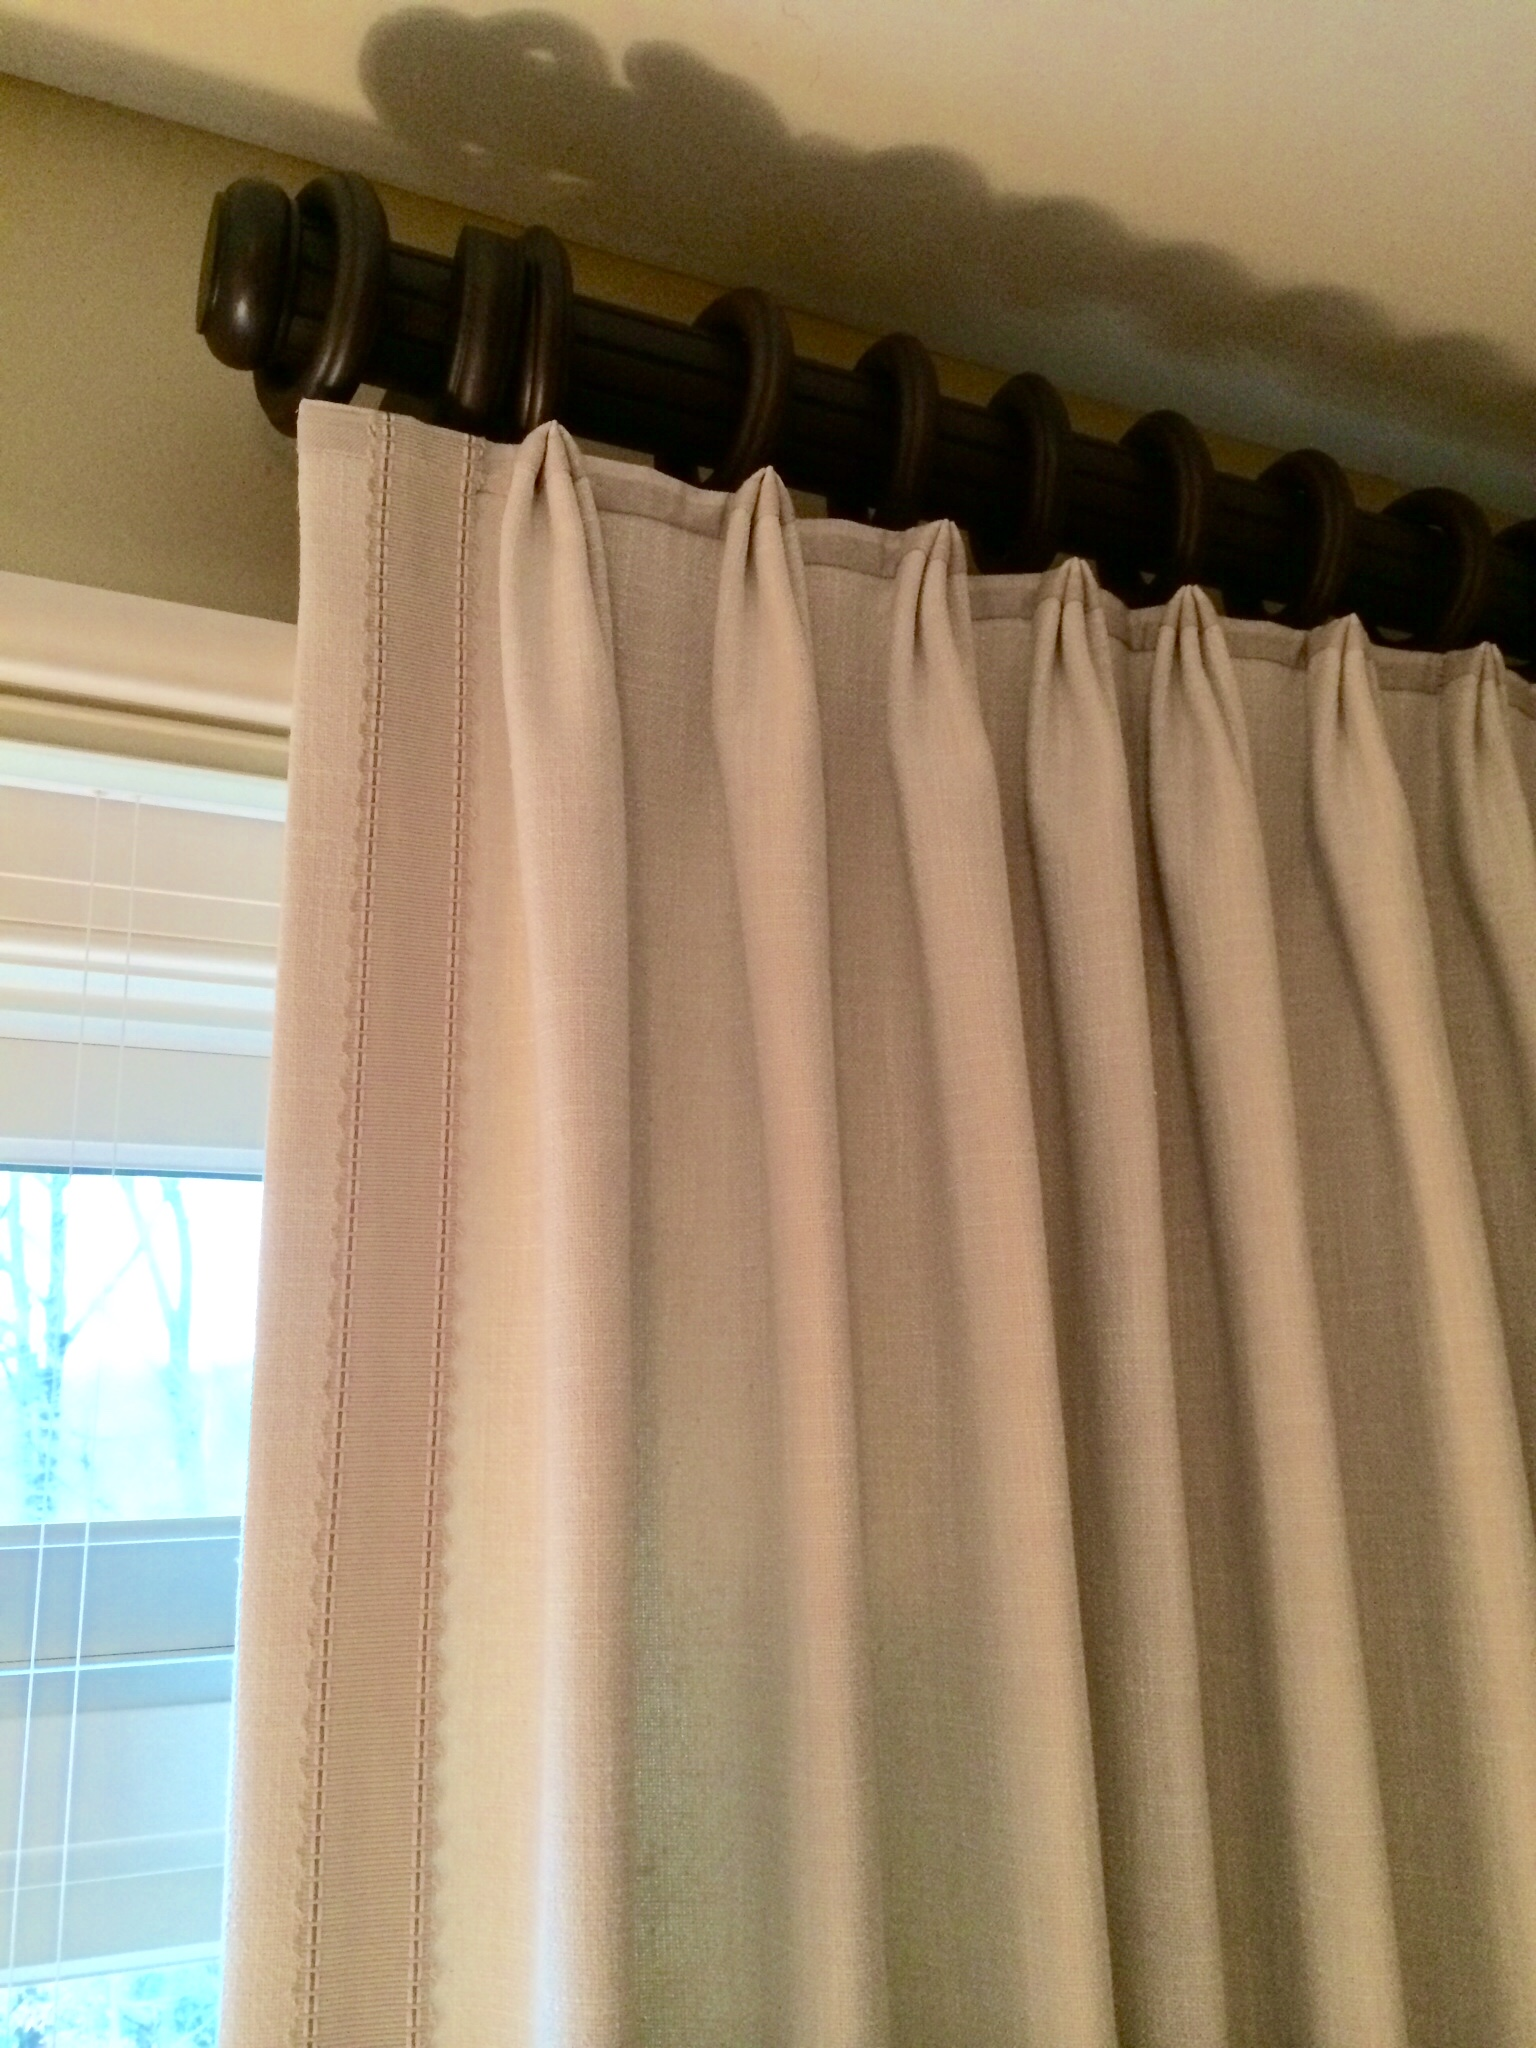 Top pleat panels on decorative rod with accent banding and fabric accent on top